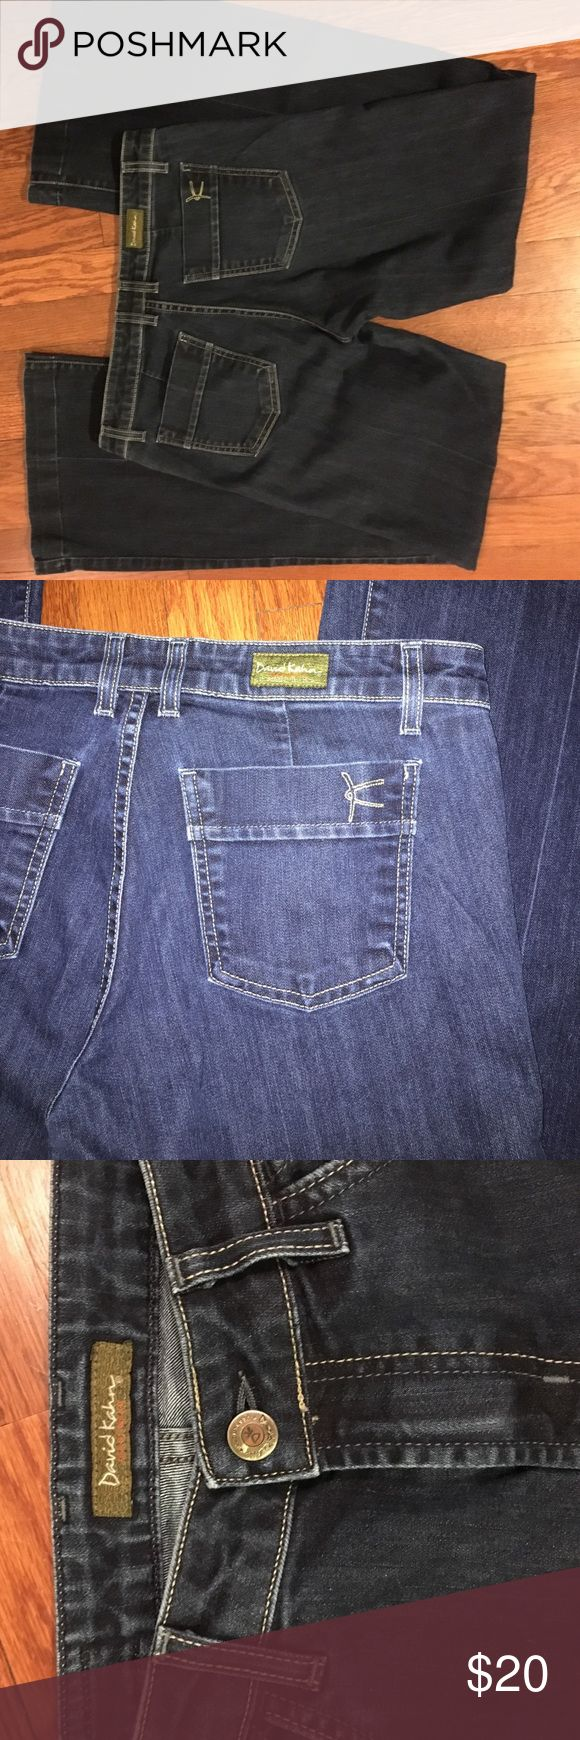 Women's dark wash jeans Women's dark wash jeans. Great fit. David Kahn Jeans Flare & Wide Leg